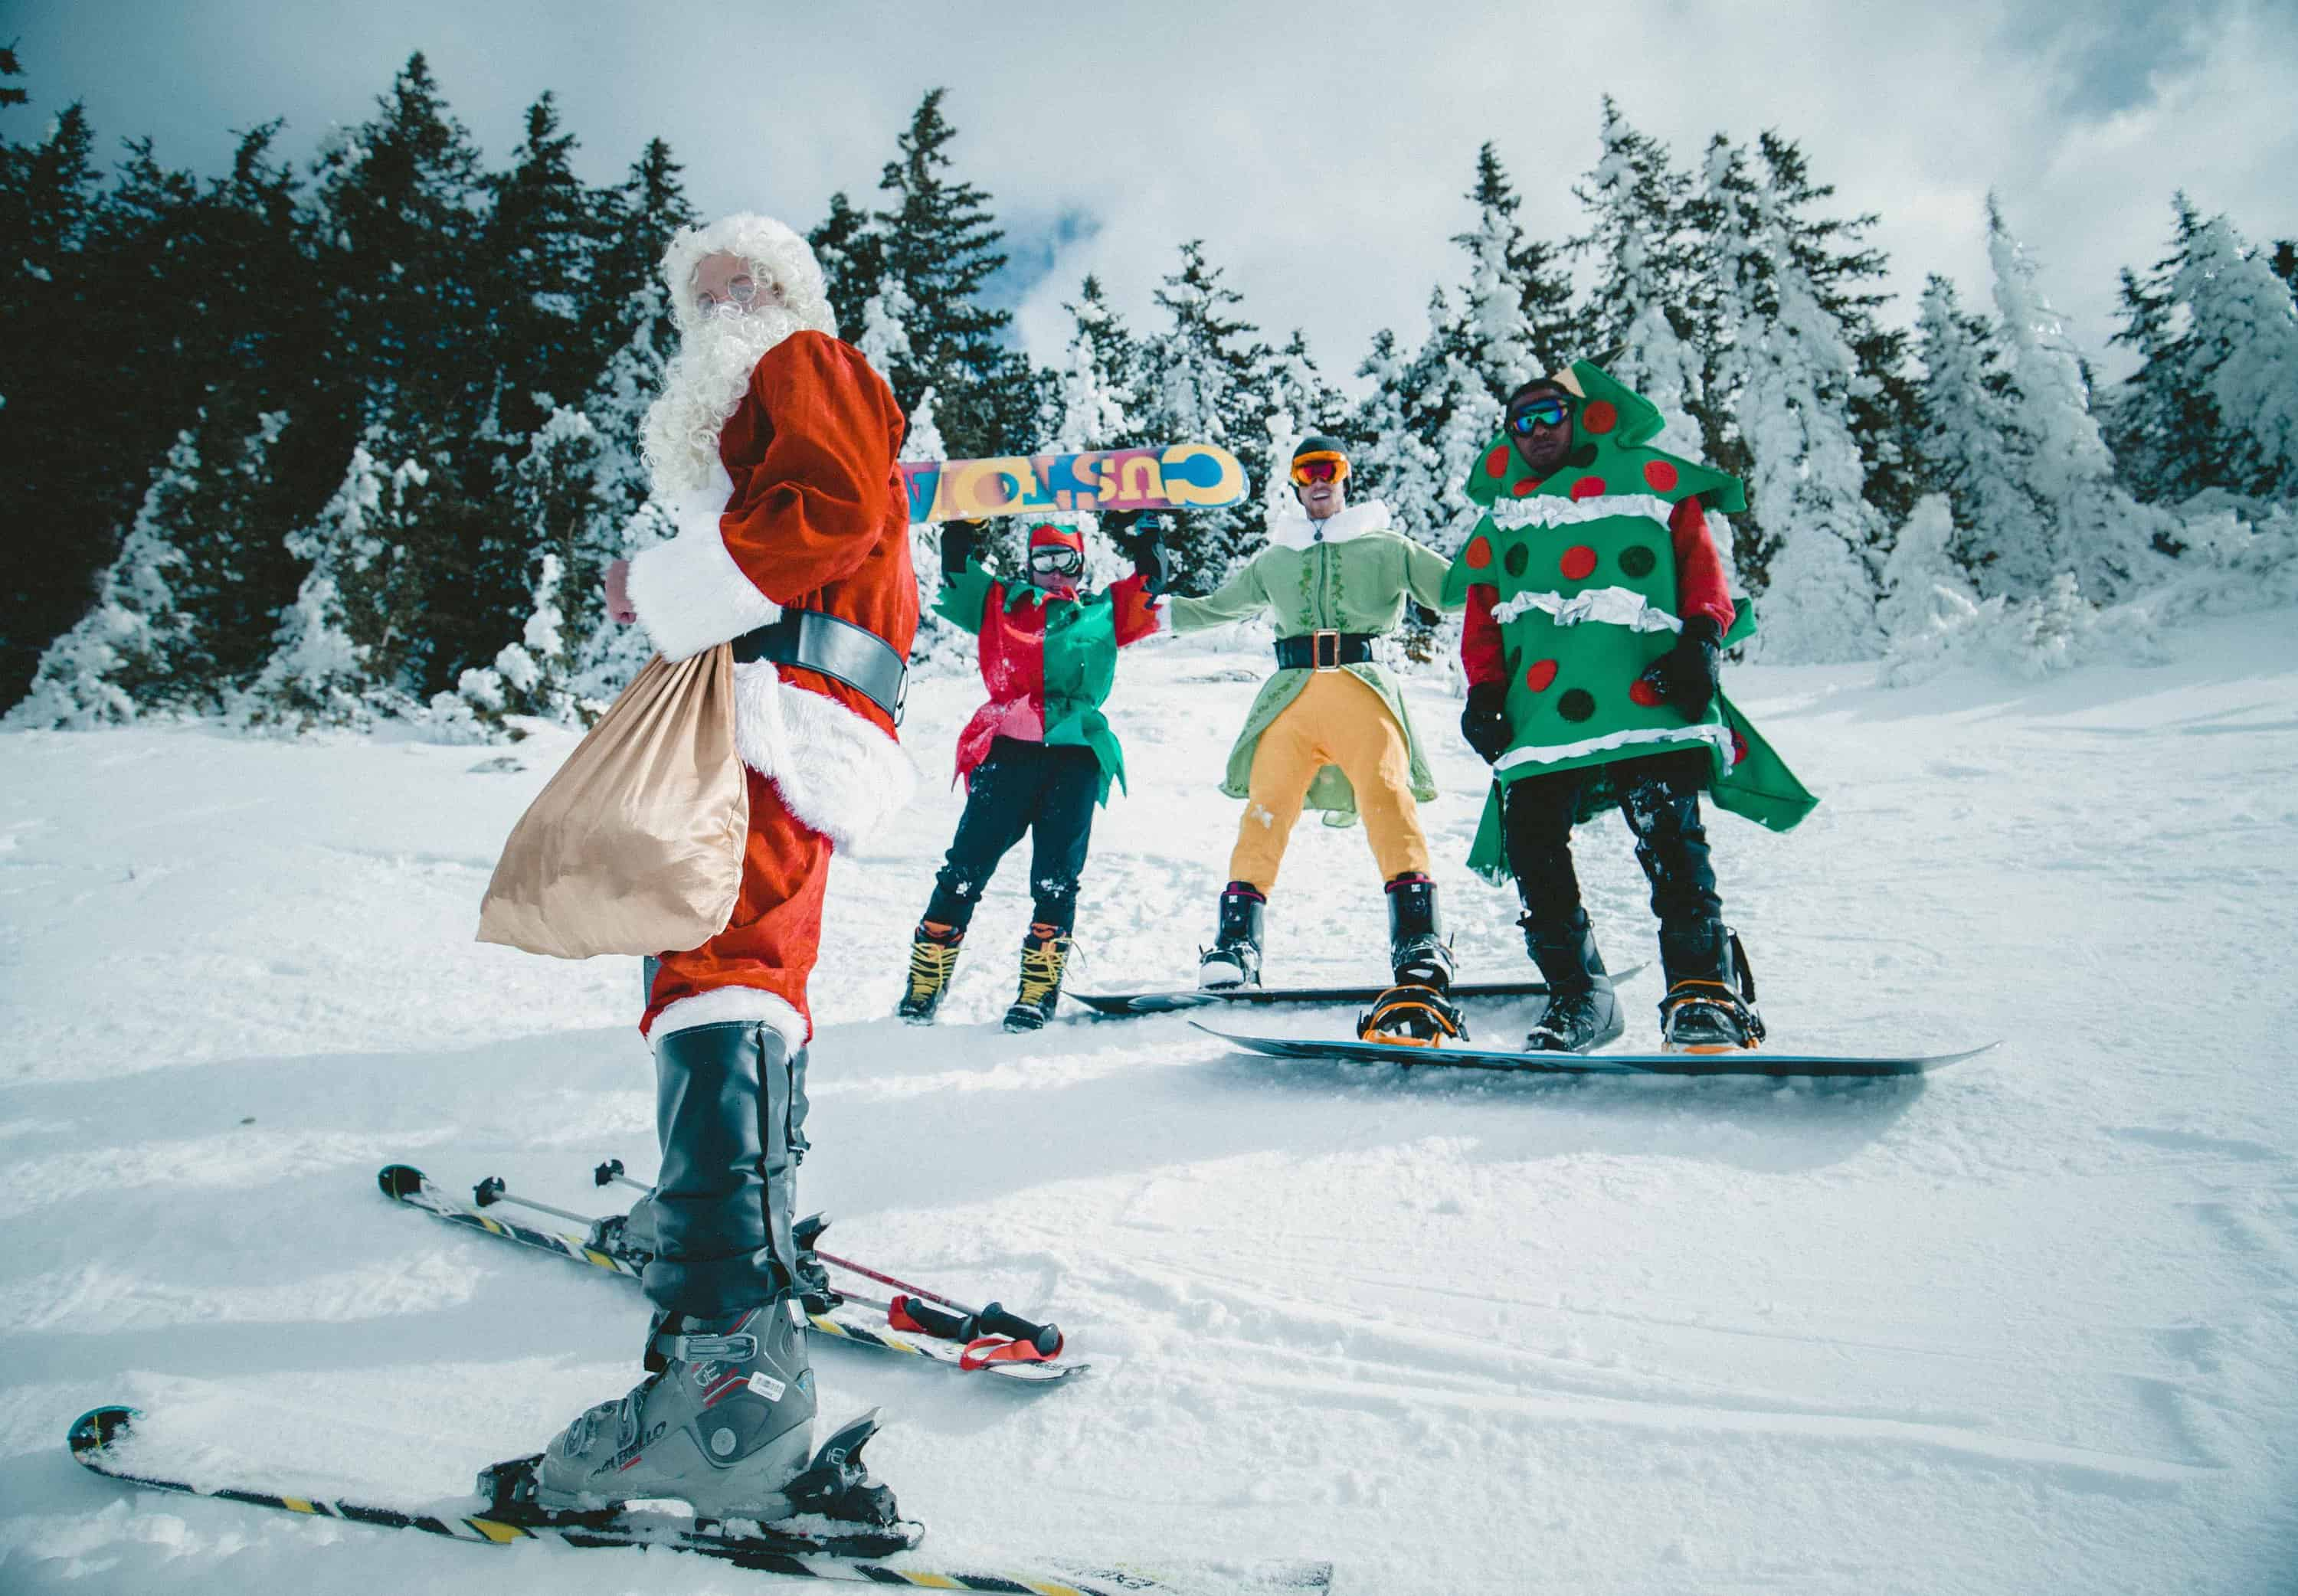 10 Gift Ideas For The Skier Or Boarder In Your Family! – White Christmas Wish list